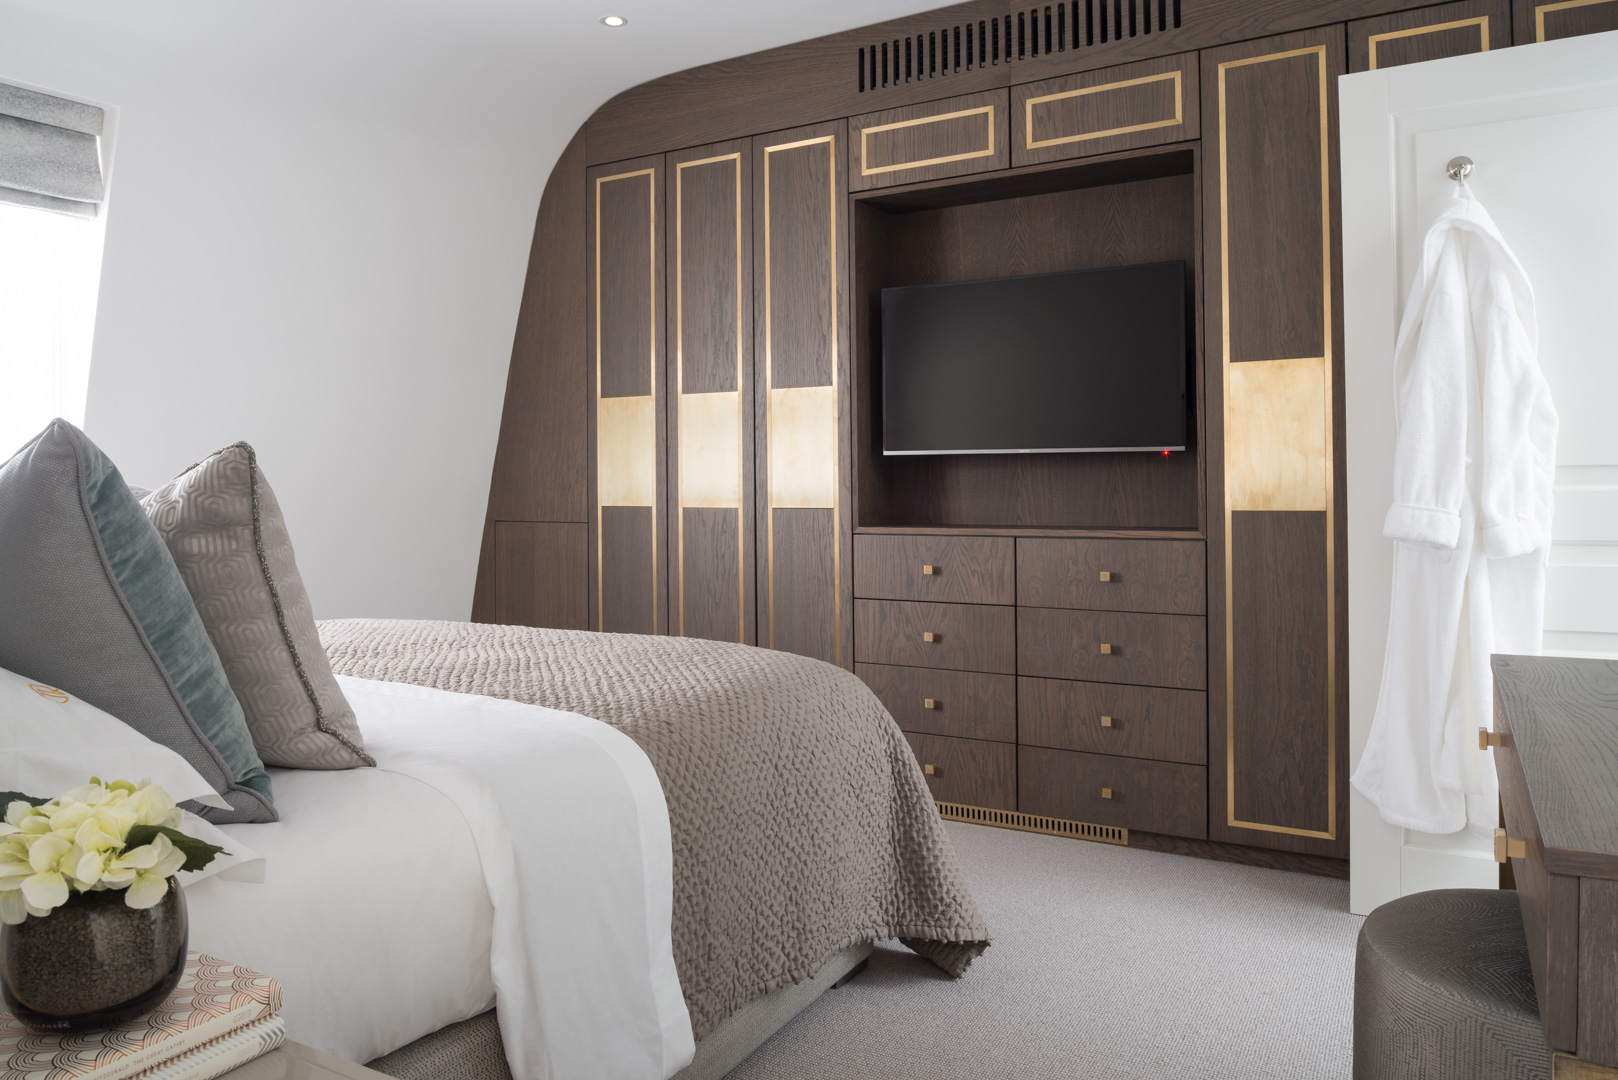 property awards zac and zac winner bedroom with brown wooden detail